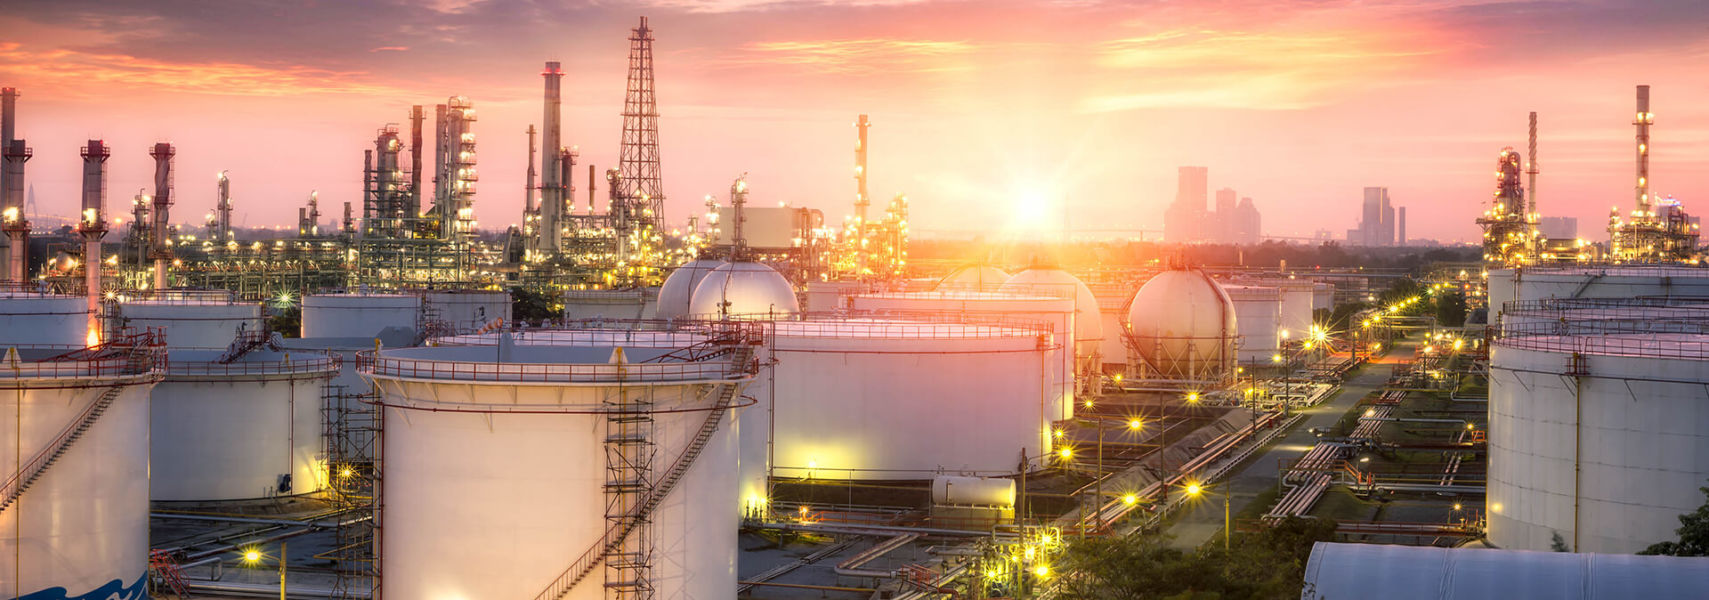 Refining & Petrochemical Header Image